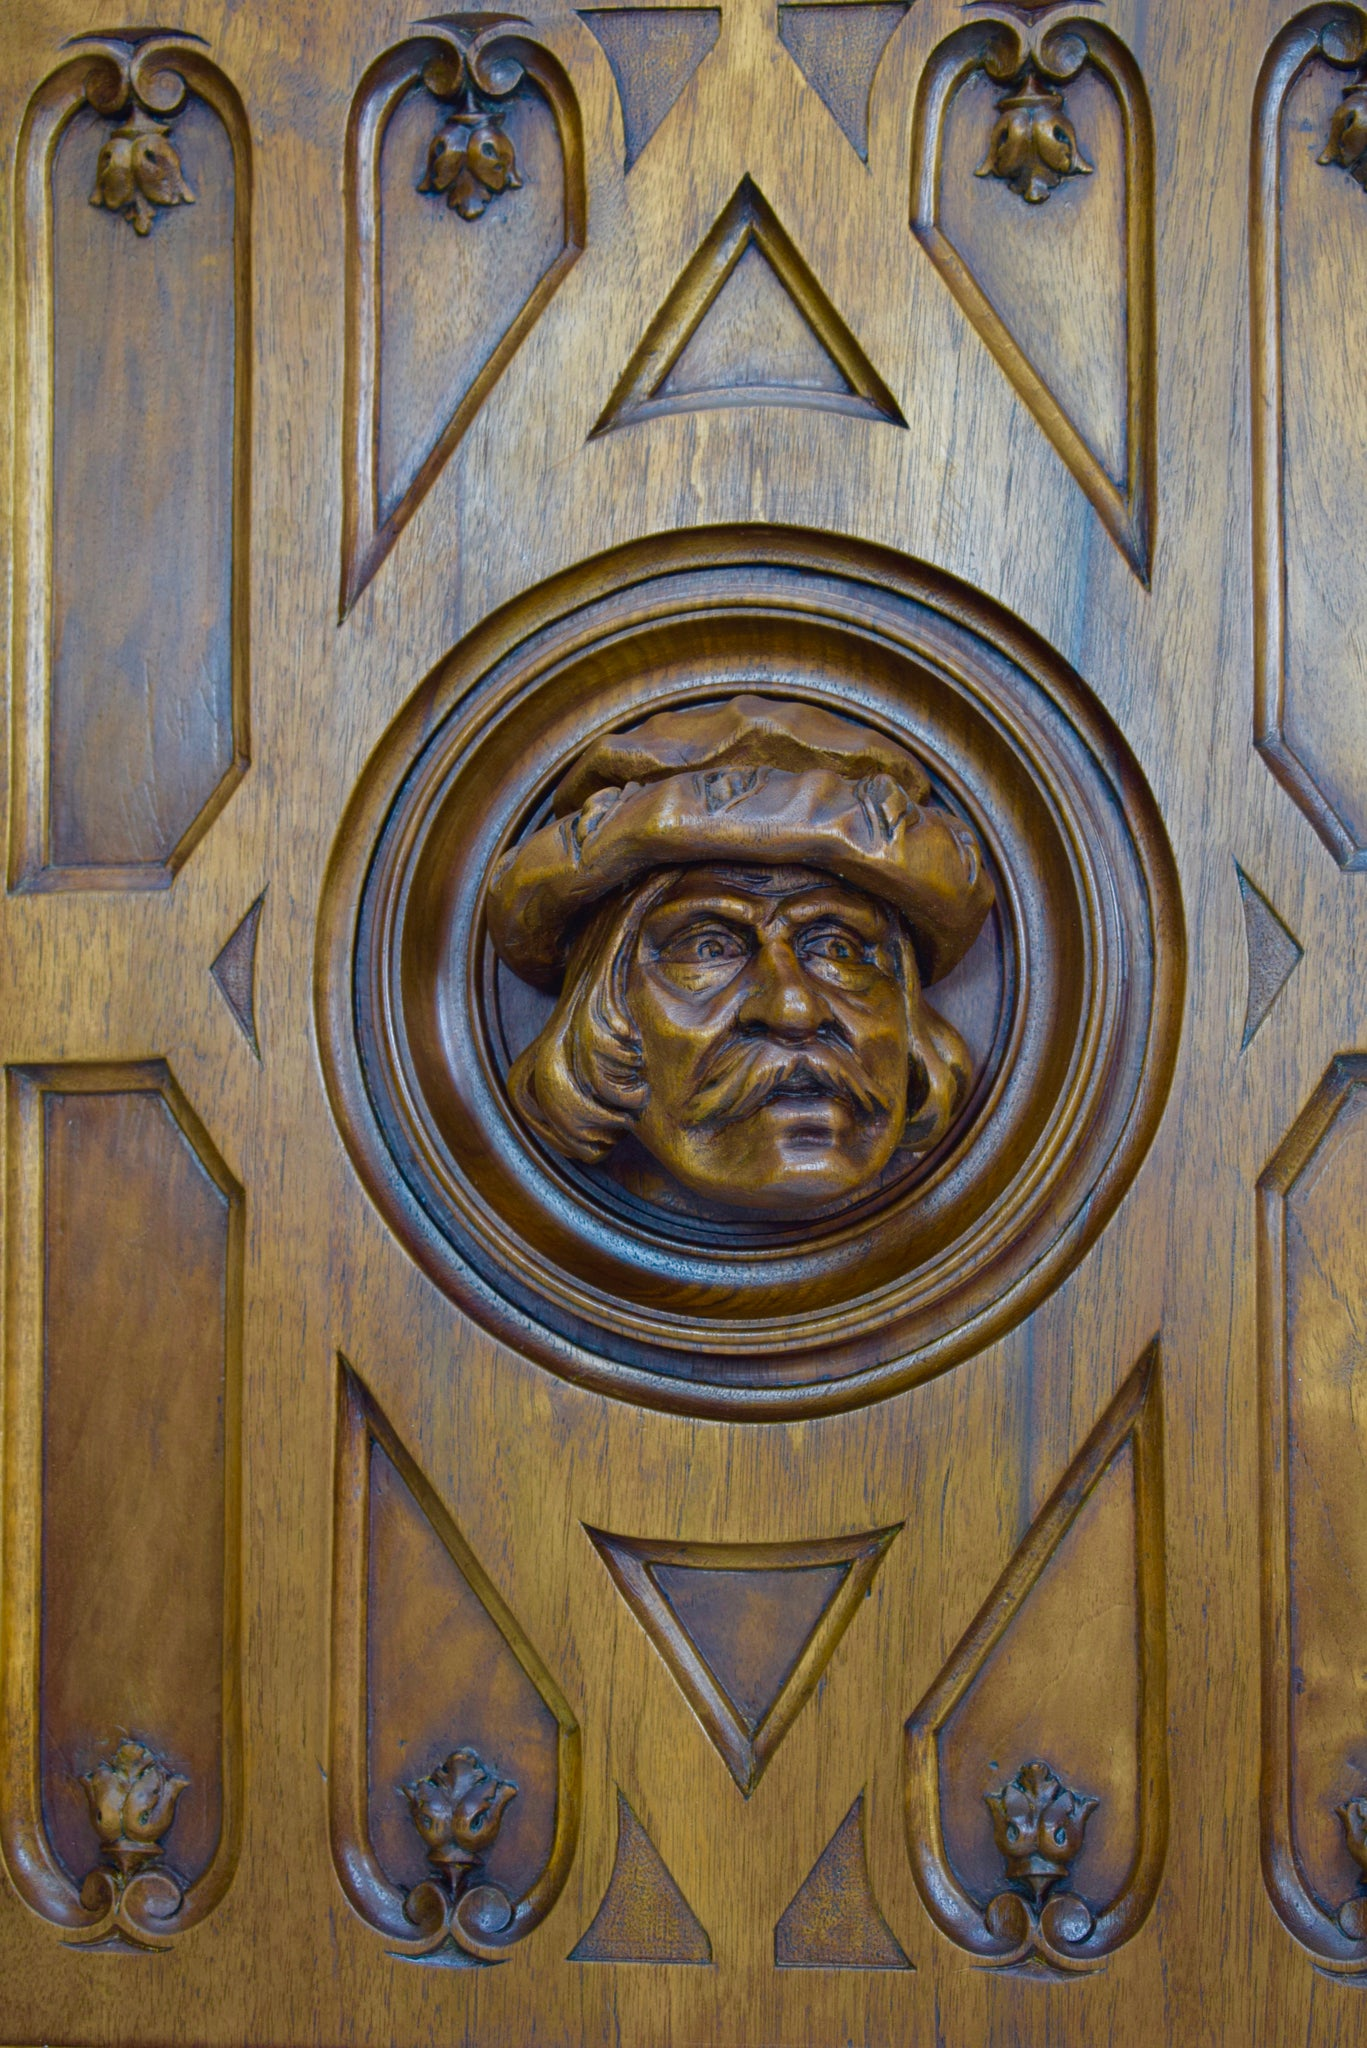 French Antique Neo Gothic Hand Carved Wood Wall Panel - Man Face Paneling - 19th Victorian Wall Carving